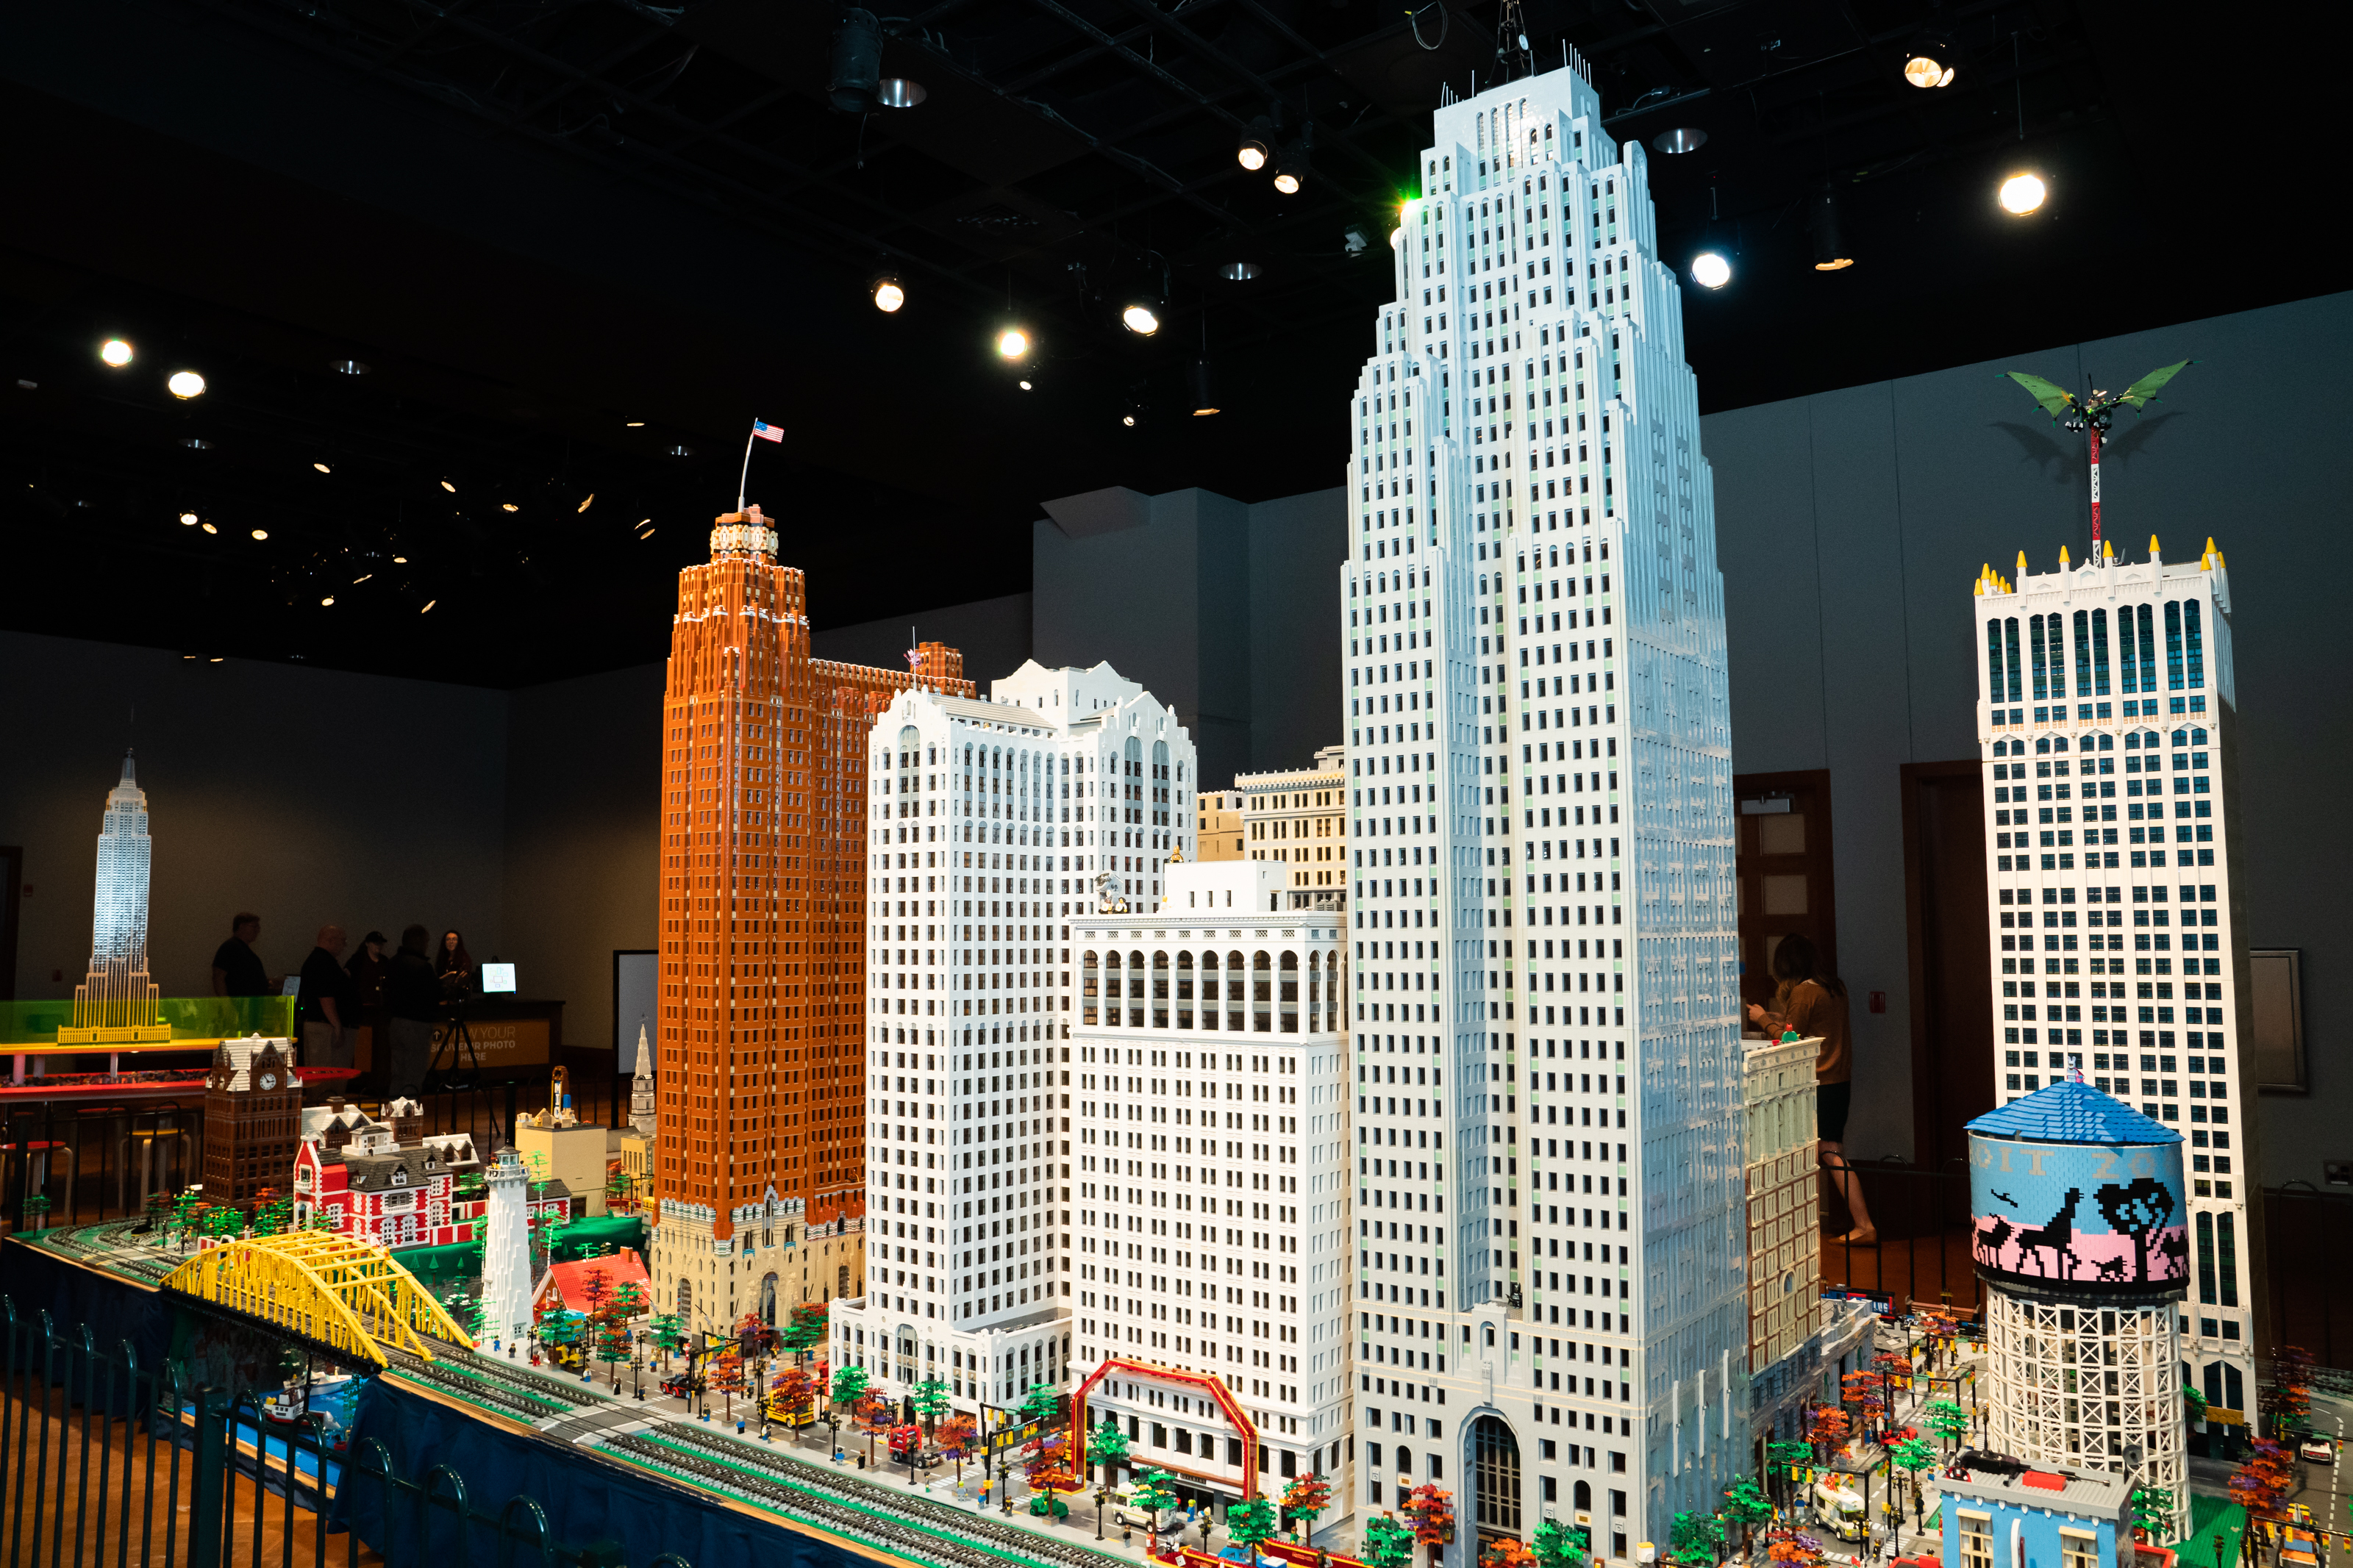 A series of skyscrapers constructed out of Legos. The detailing is impressive.